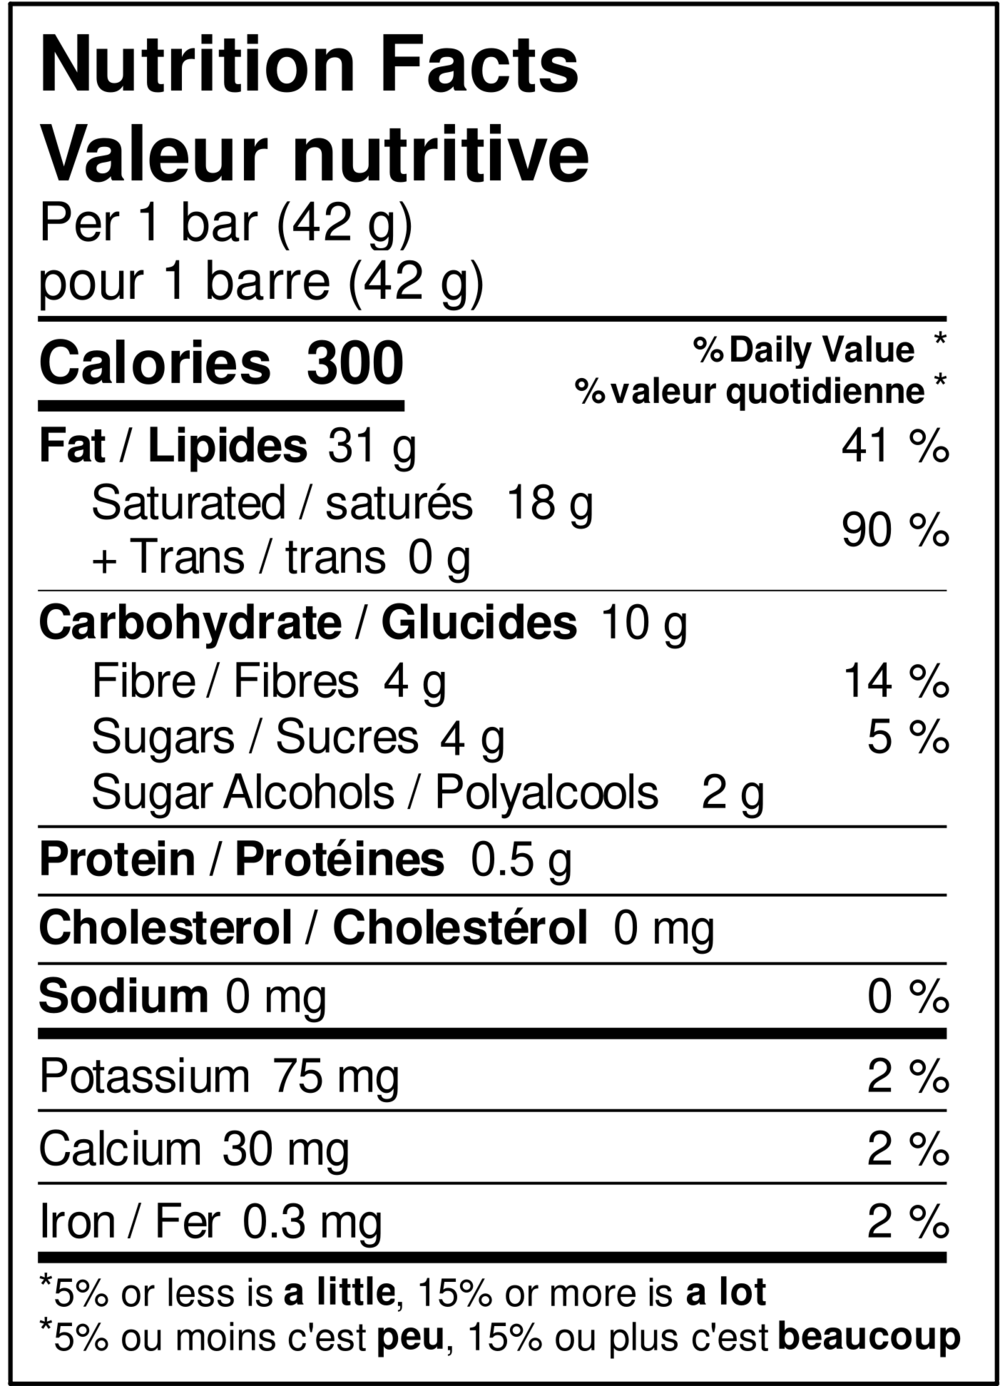 Nutritional Info for Original, Peppermint and Orange Bars